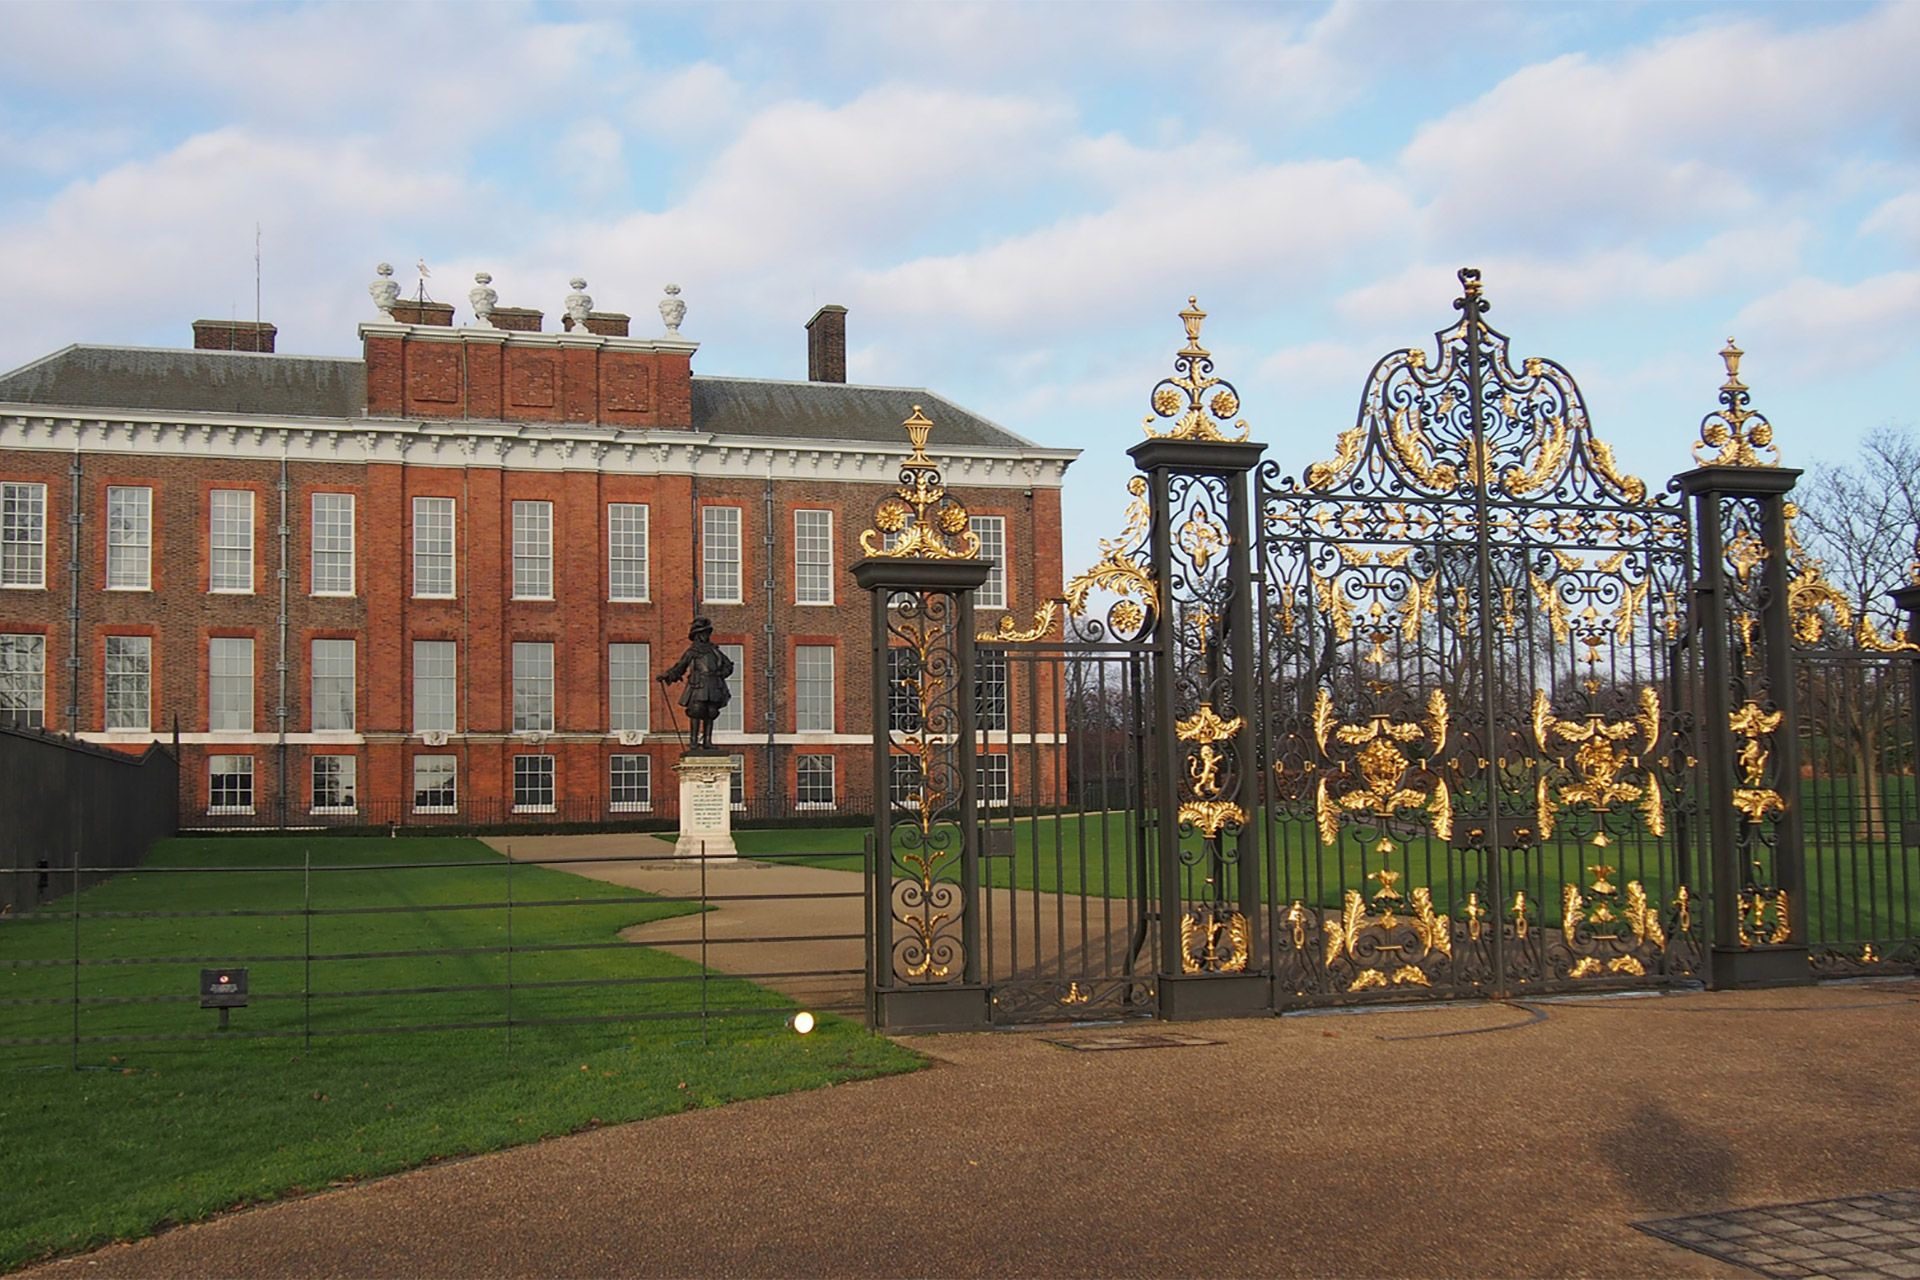 Kensington Palace gates